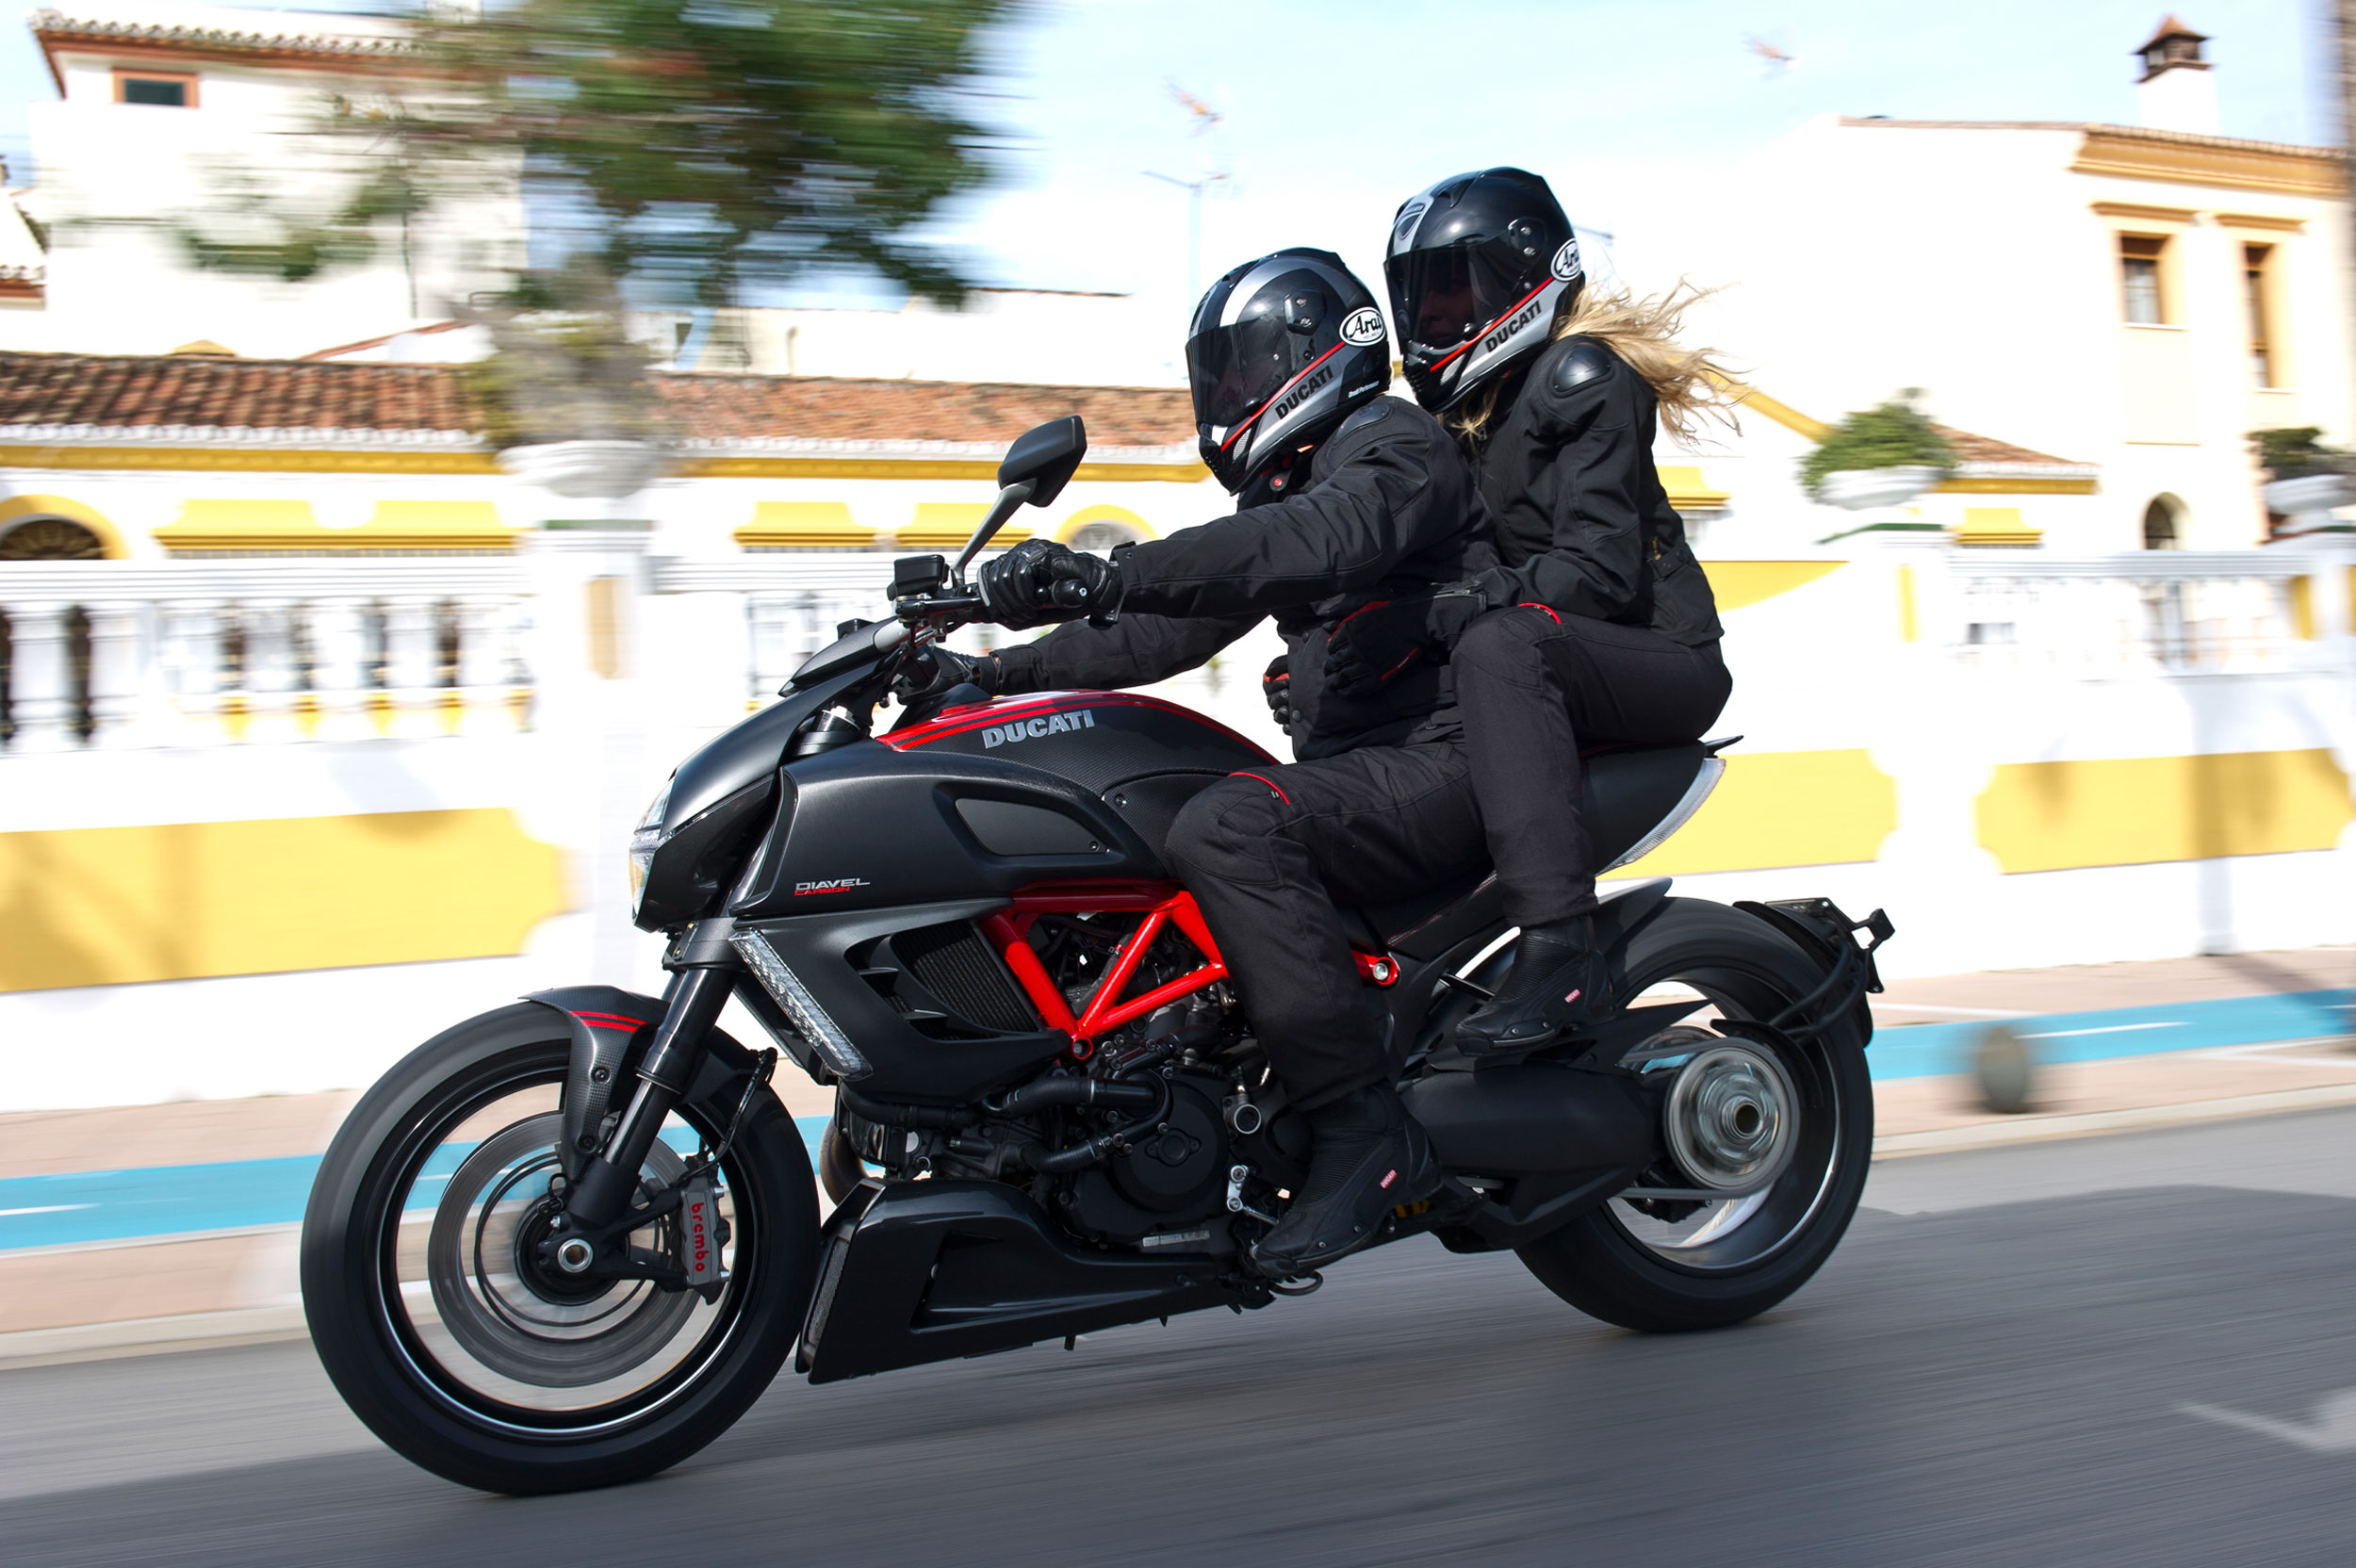 Ducati Malaysia Introduces The Diavel And Monster Art